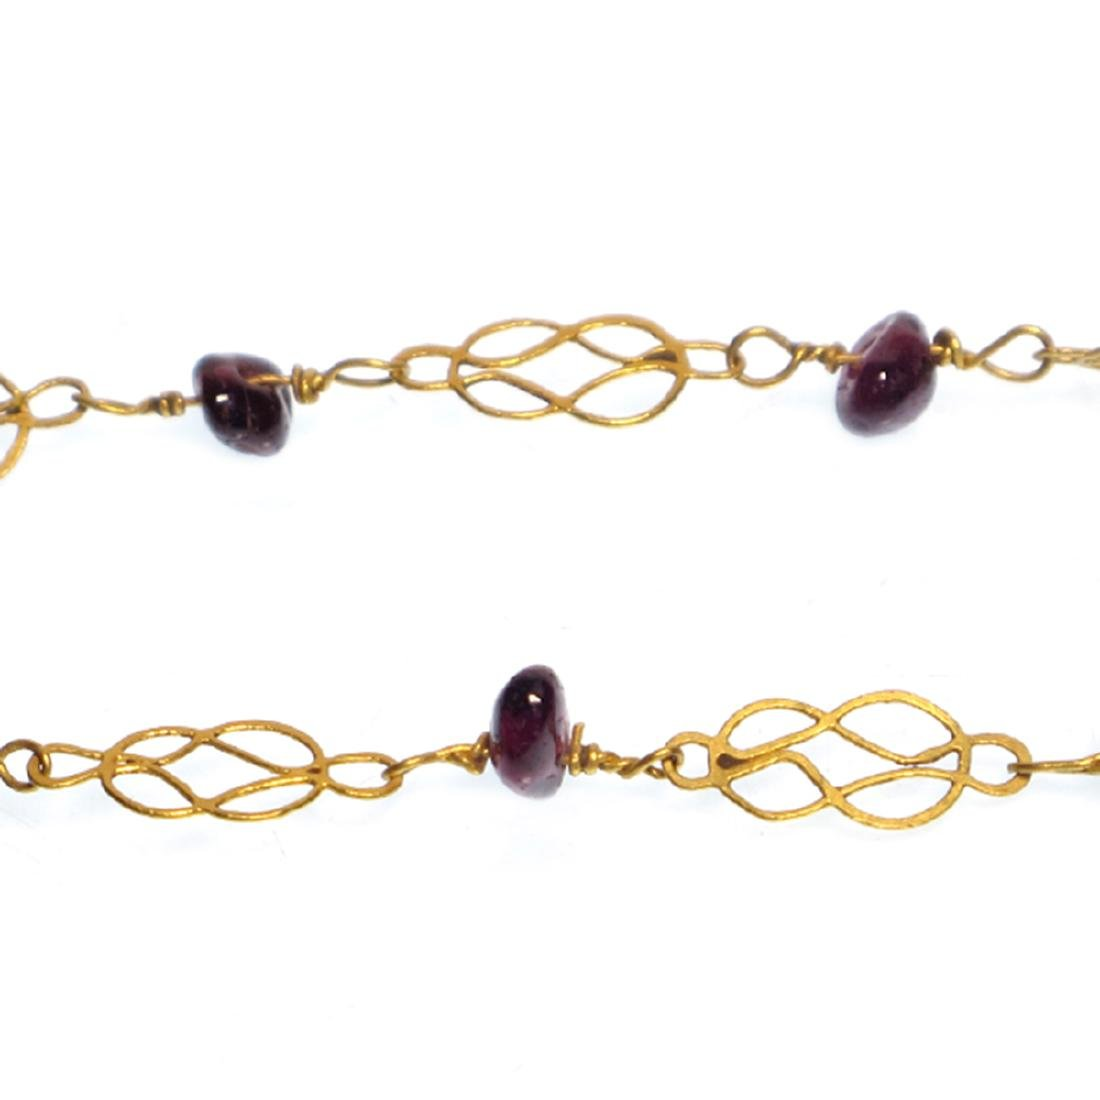 Roman Gold and Garnets Necklace, 3rd-4th Century A.D. - 4